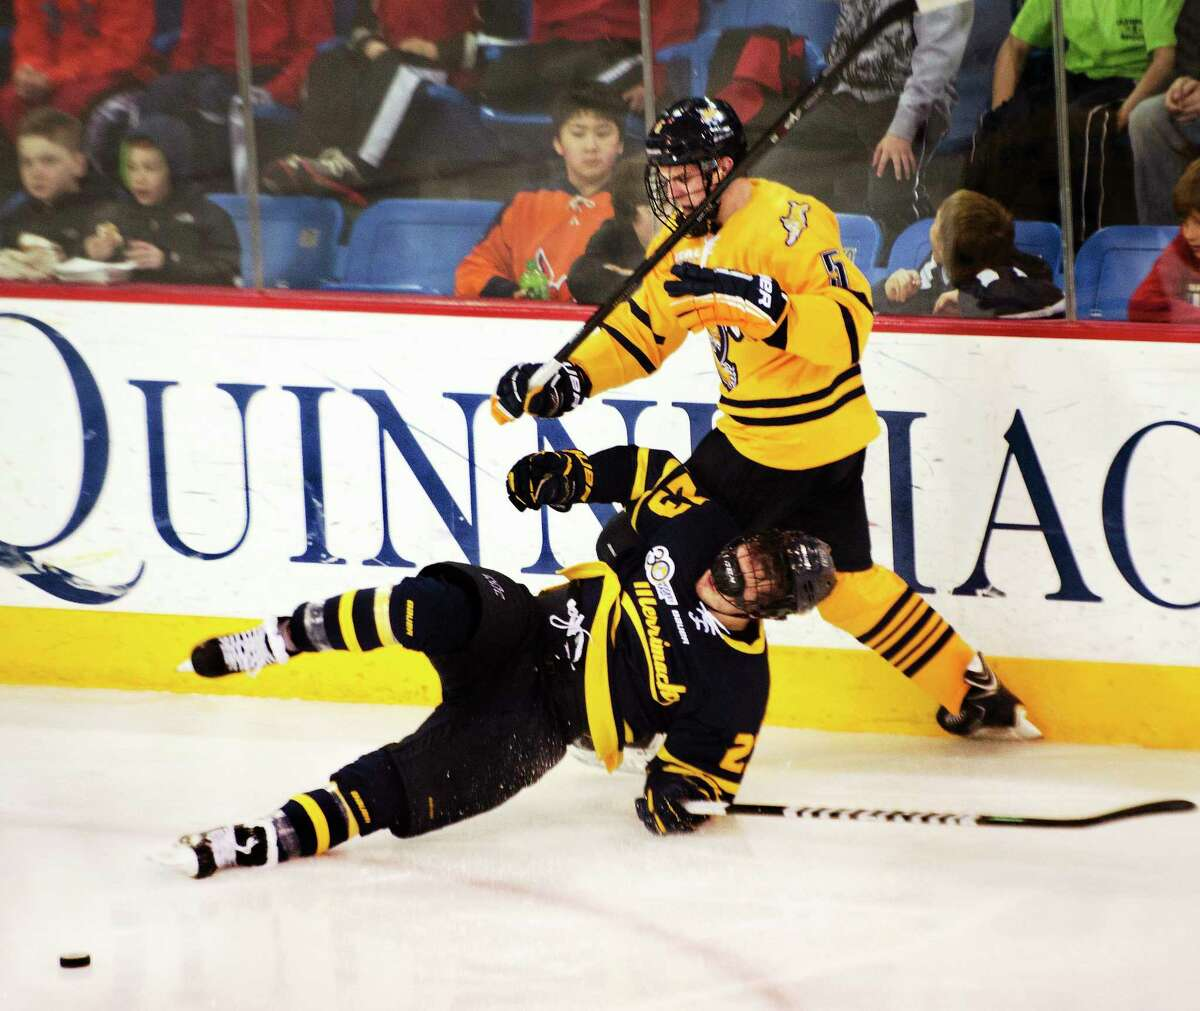 Quinnipiac's Devon Toews was selected with the 108th pick in Saturday's NHL Entry Draft by the New York Islanders.